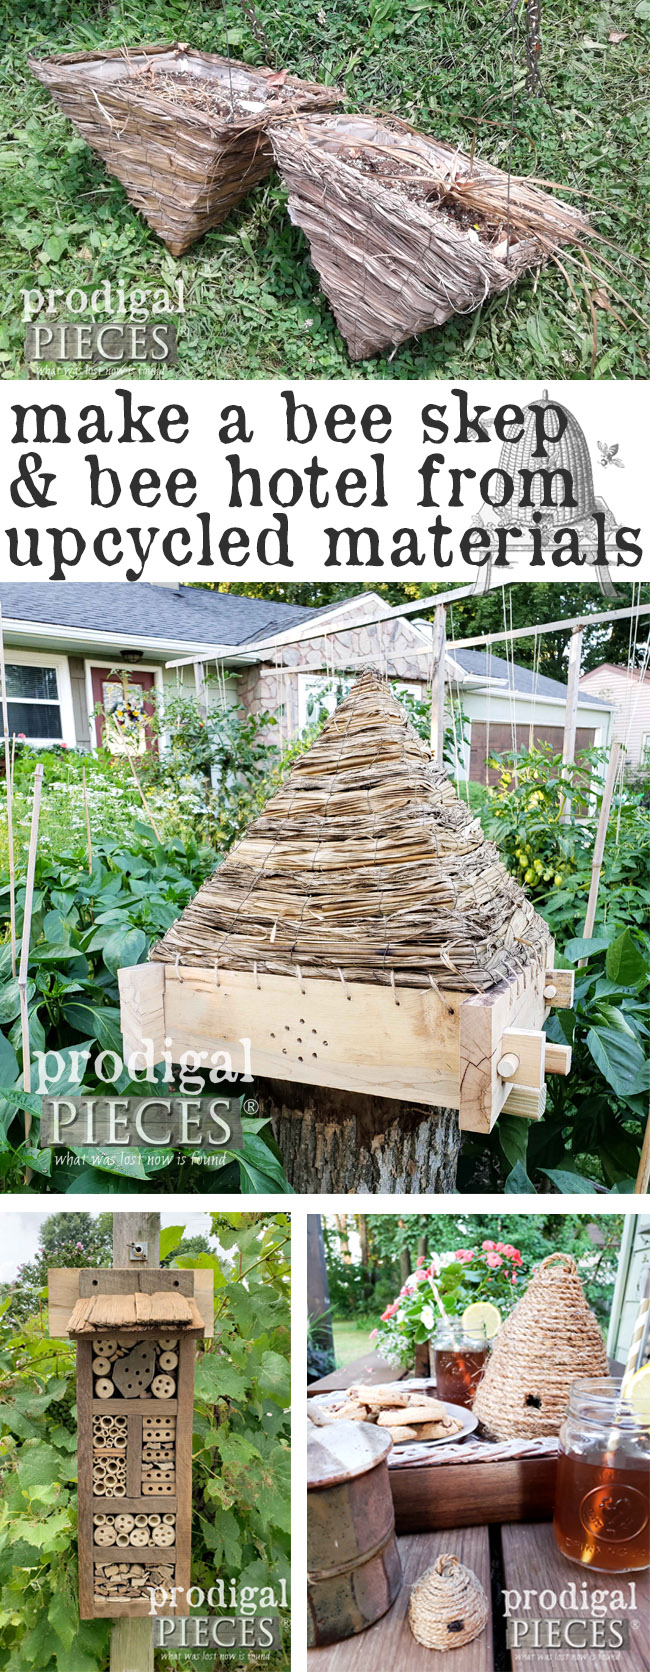 Get your craft on with these fun and easy to create DIY bee skep tutorials. It's time to do some garden and home decor fun that the whole family can enjoy. Get the step-by-step details at Prodigal Pieces | prodigalpieces.com #prodigalpieces #diy #garden #handmade #homedecor #crafts #kids